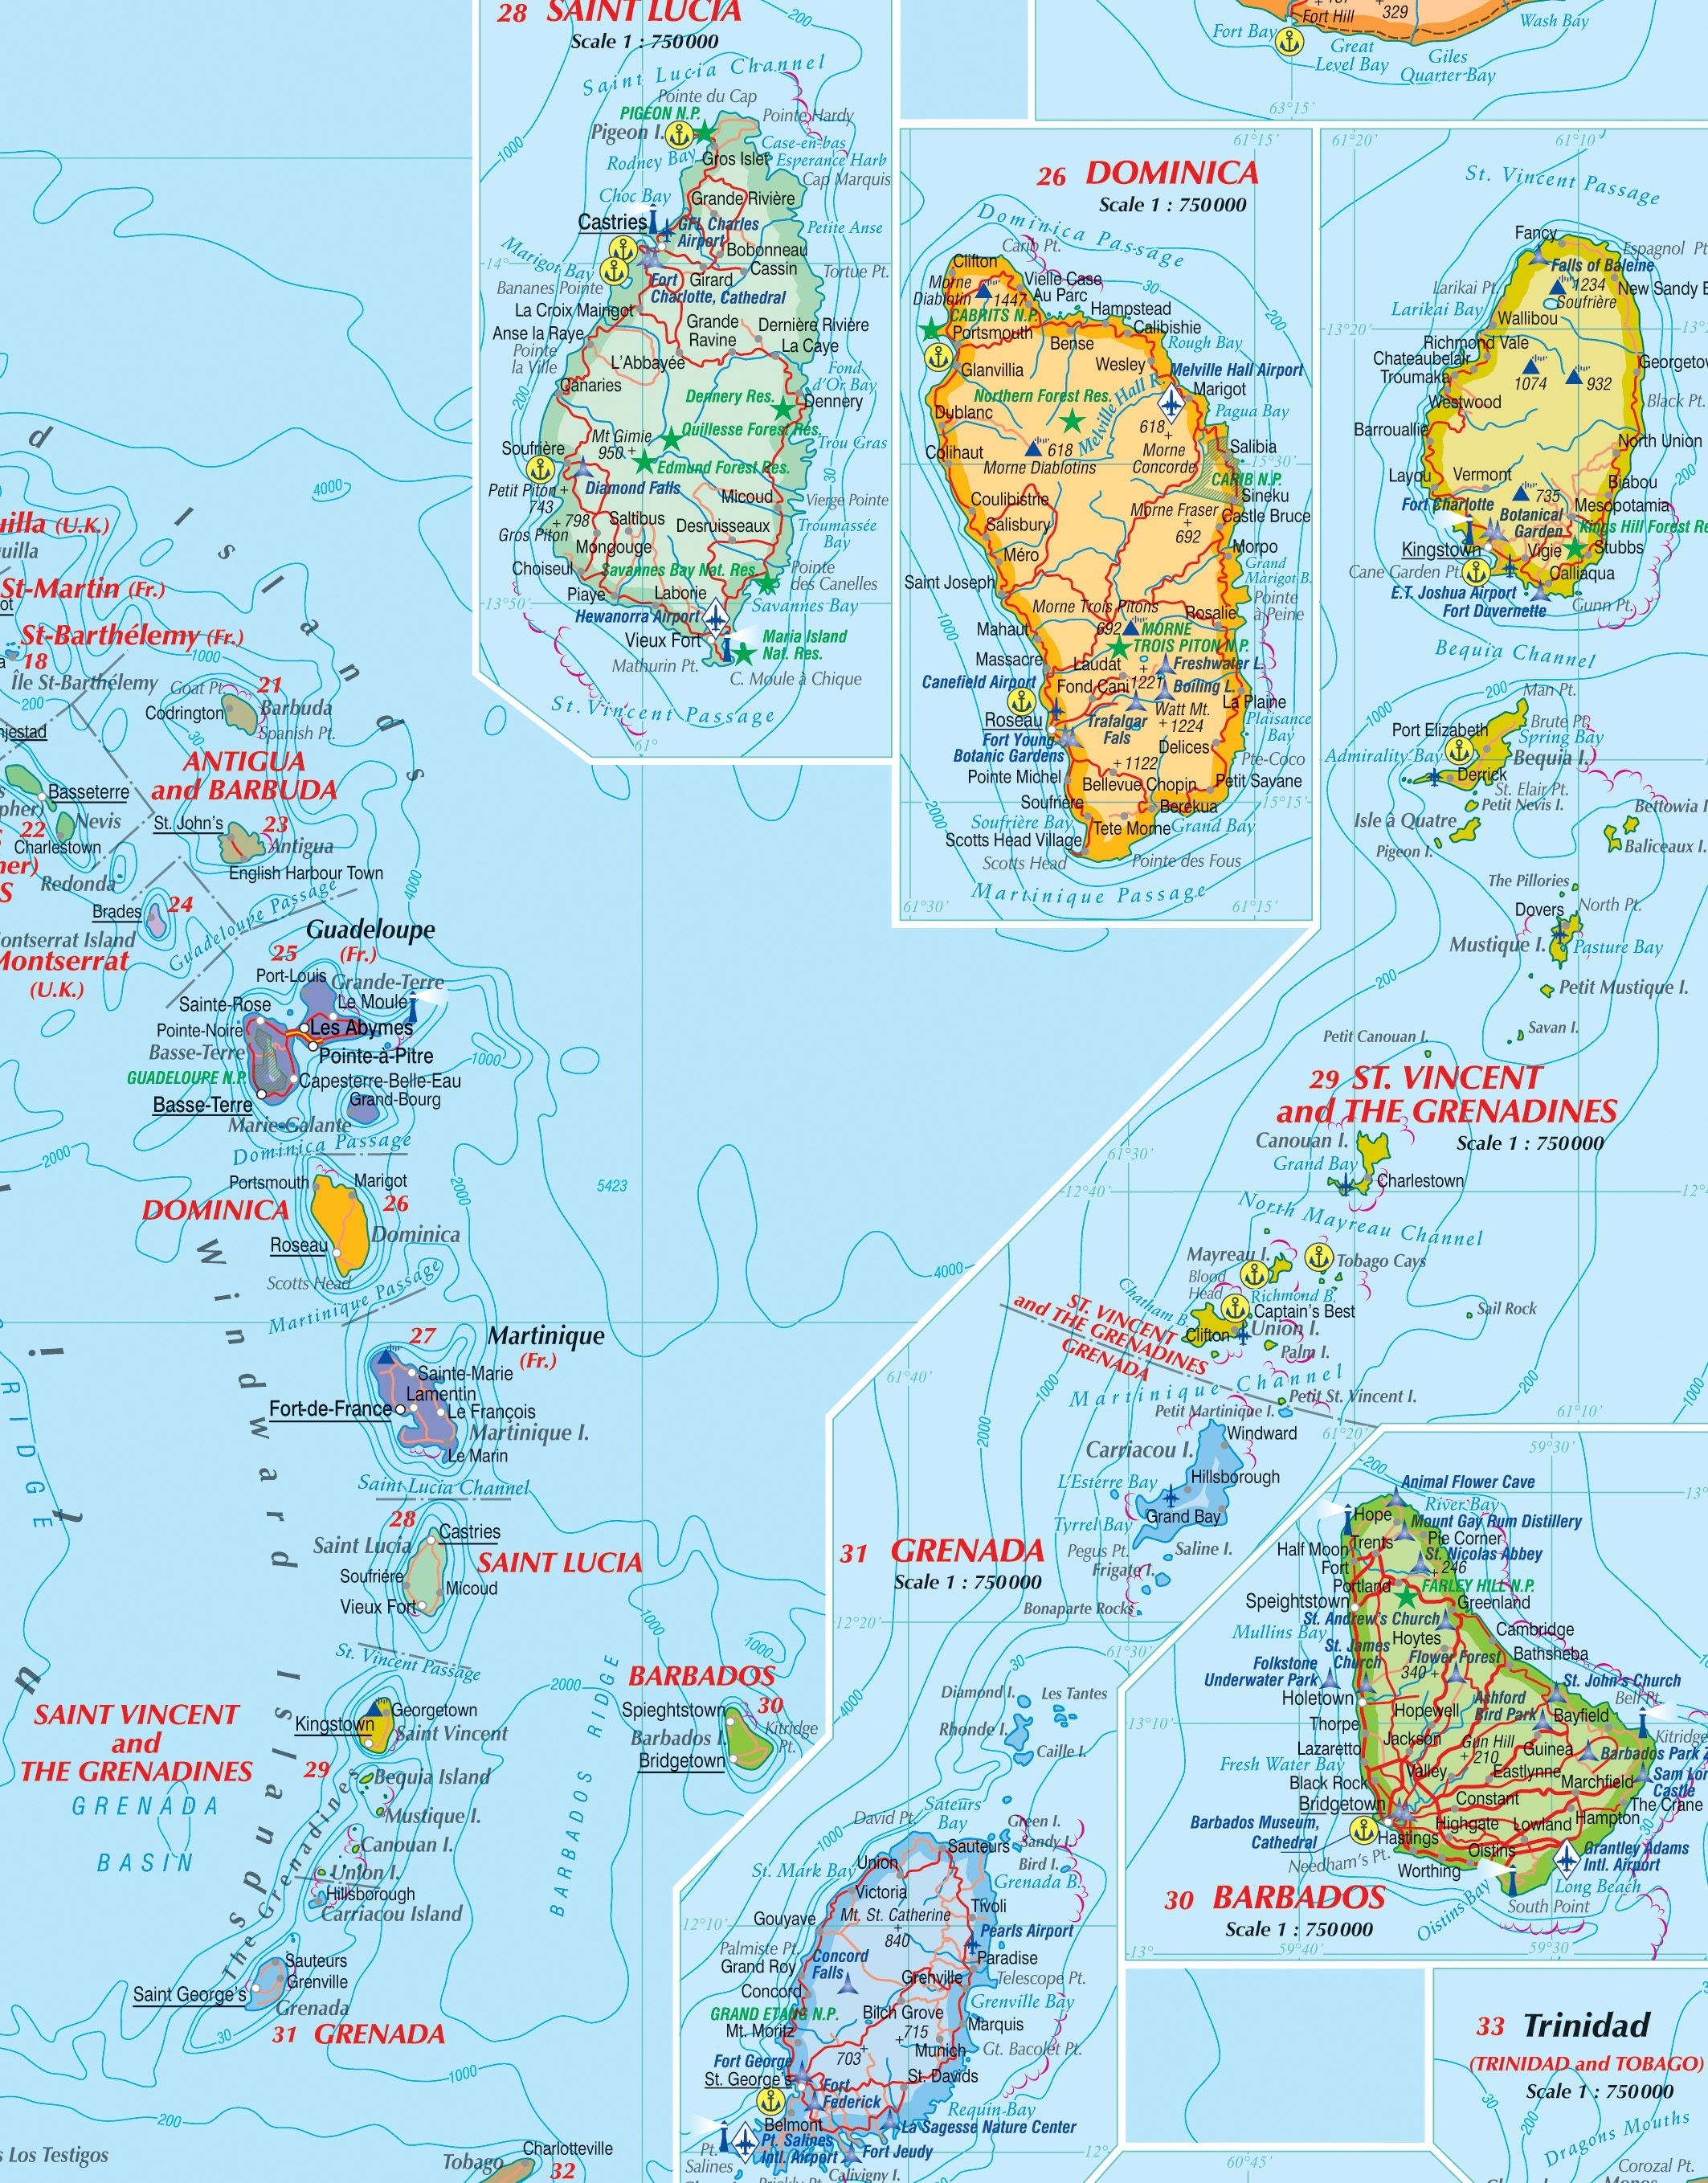 Craenen Kasprowski Maps - Map of central america and the caribbean islands